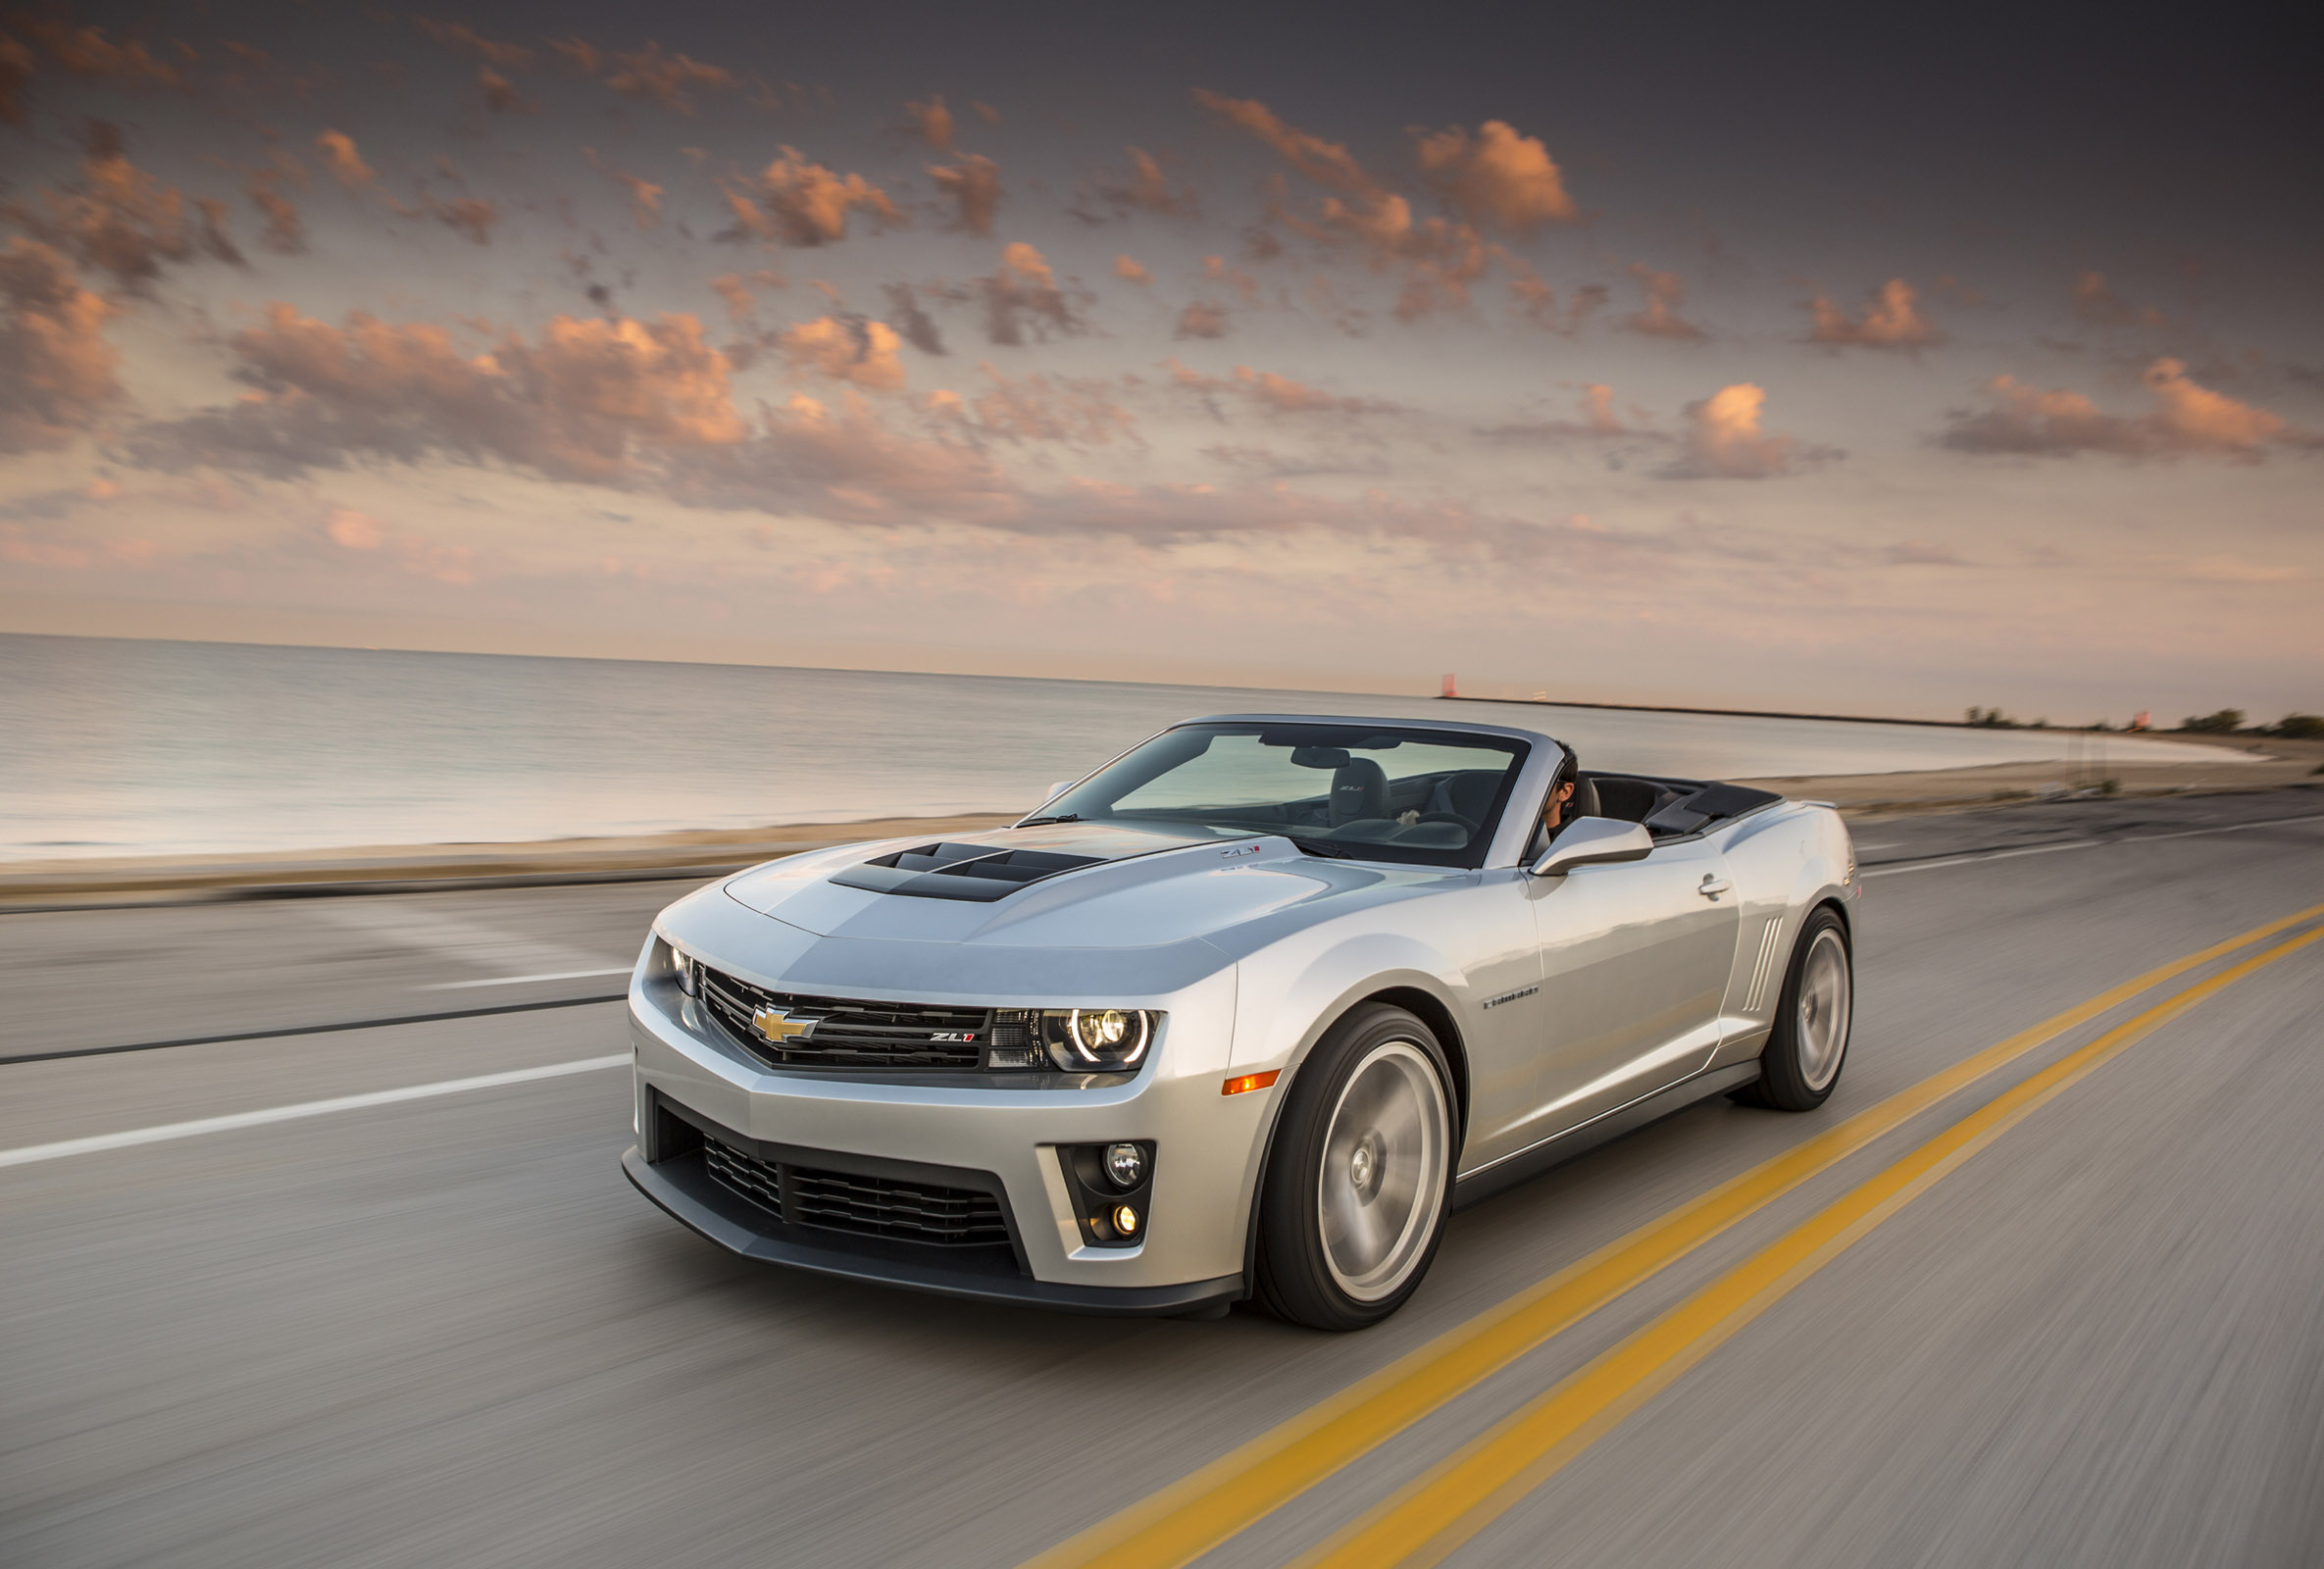 2015 Chevrolet Camaro Zl1 Convertible Muscle Cars News